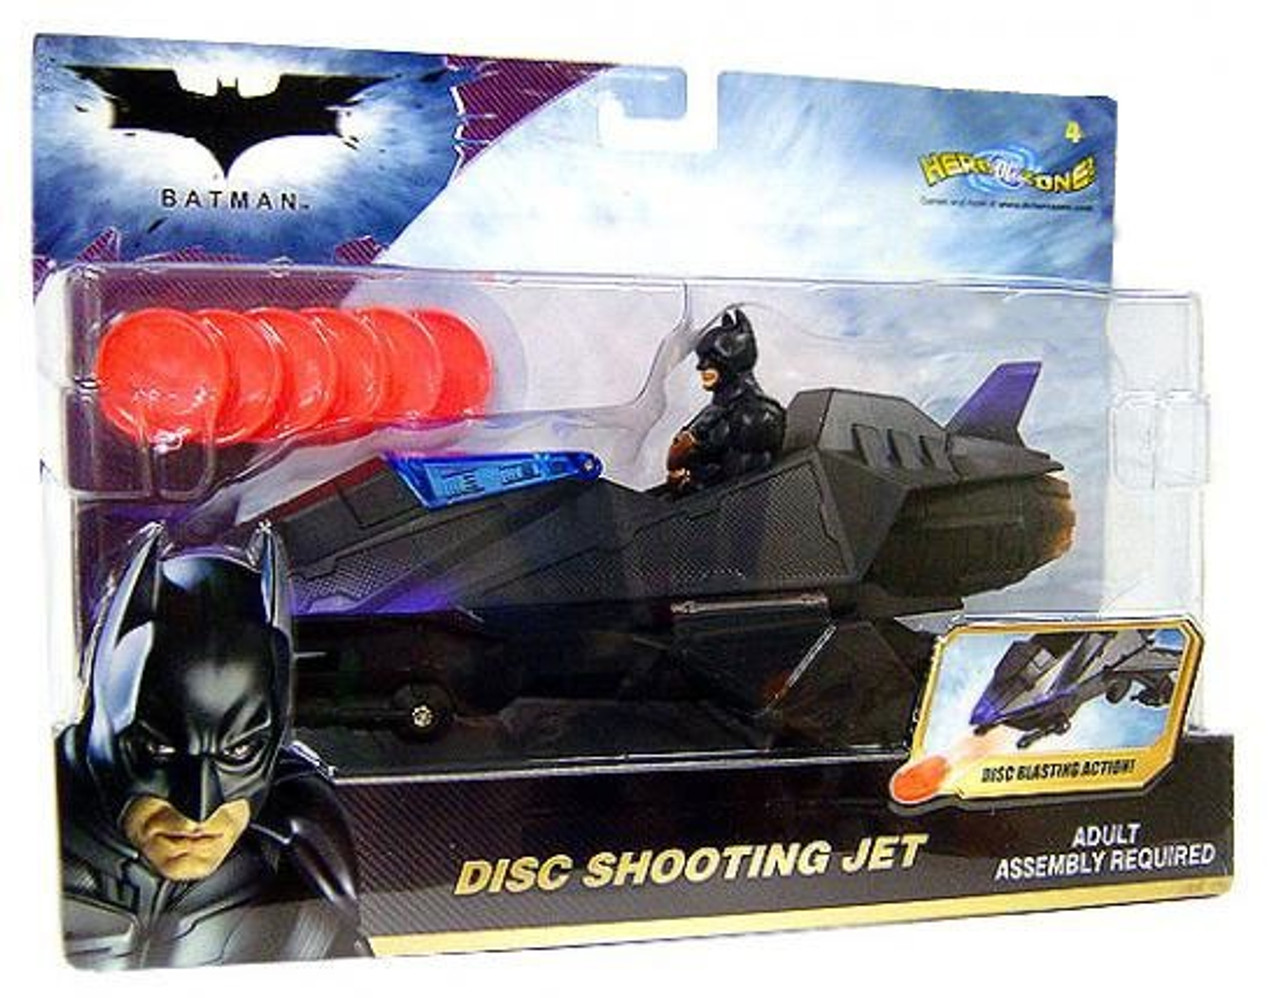 Batman The Dark Knight Disc Shooting Jet Vehicle